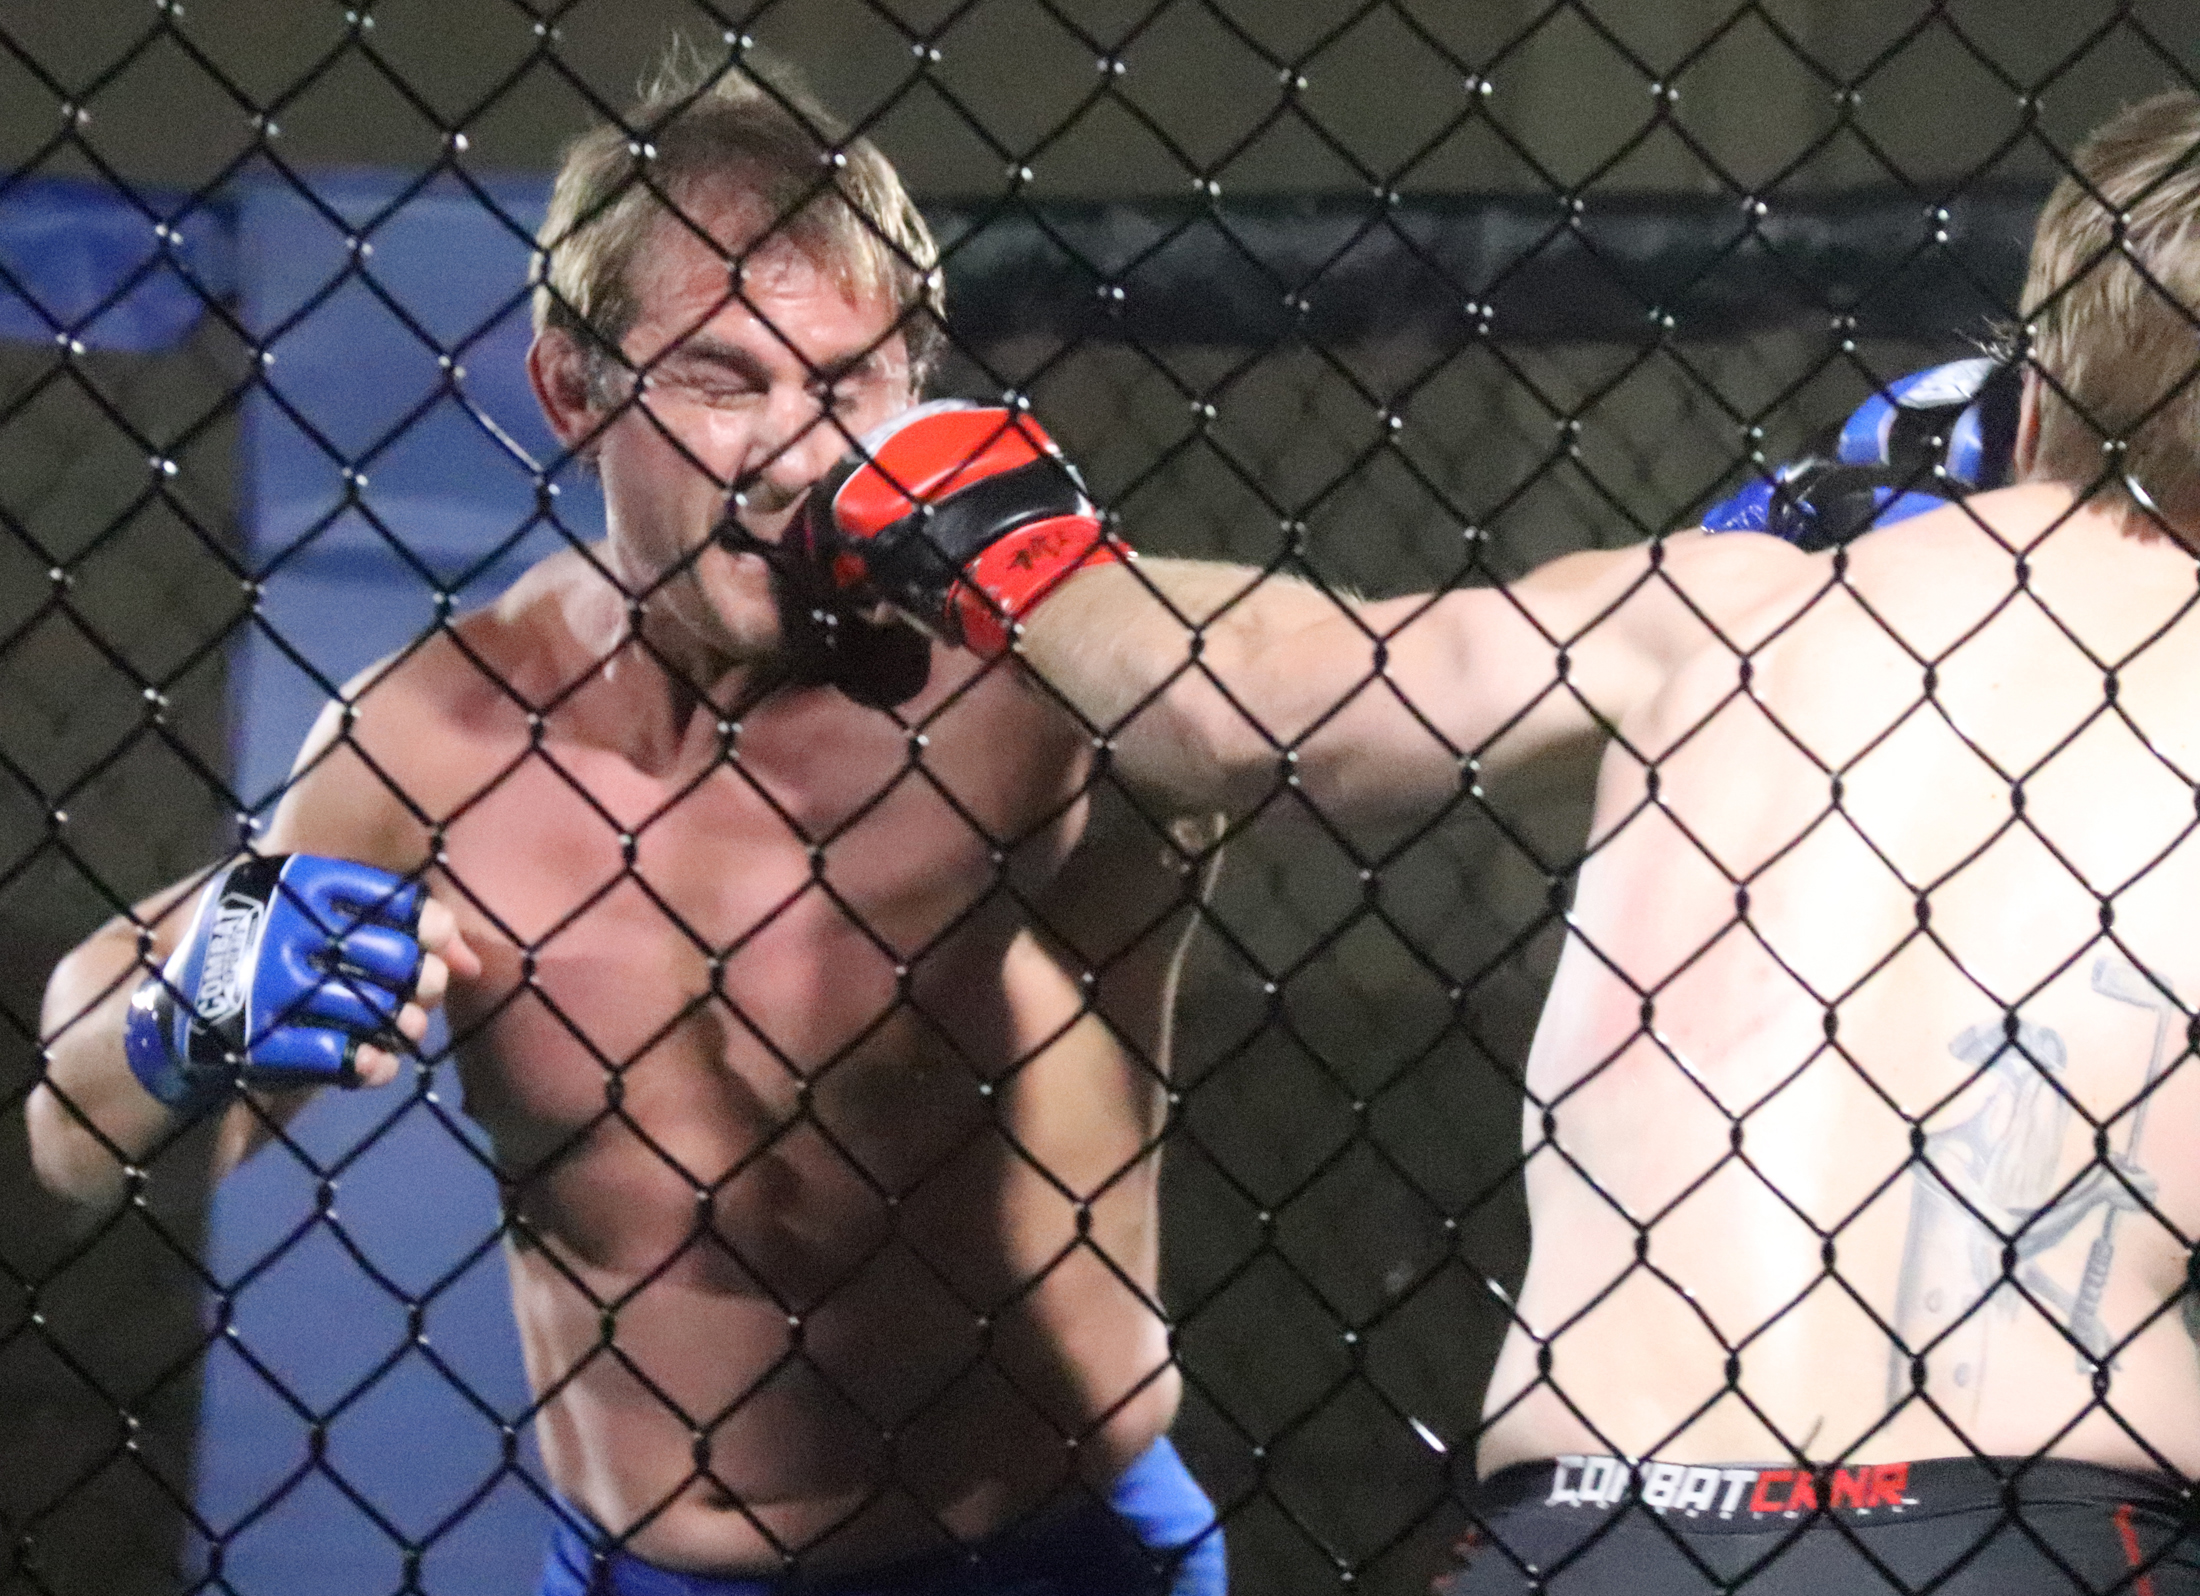 Veteran MMA fighter Chad Vance is not ready to retire just yet